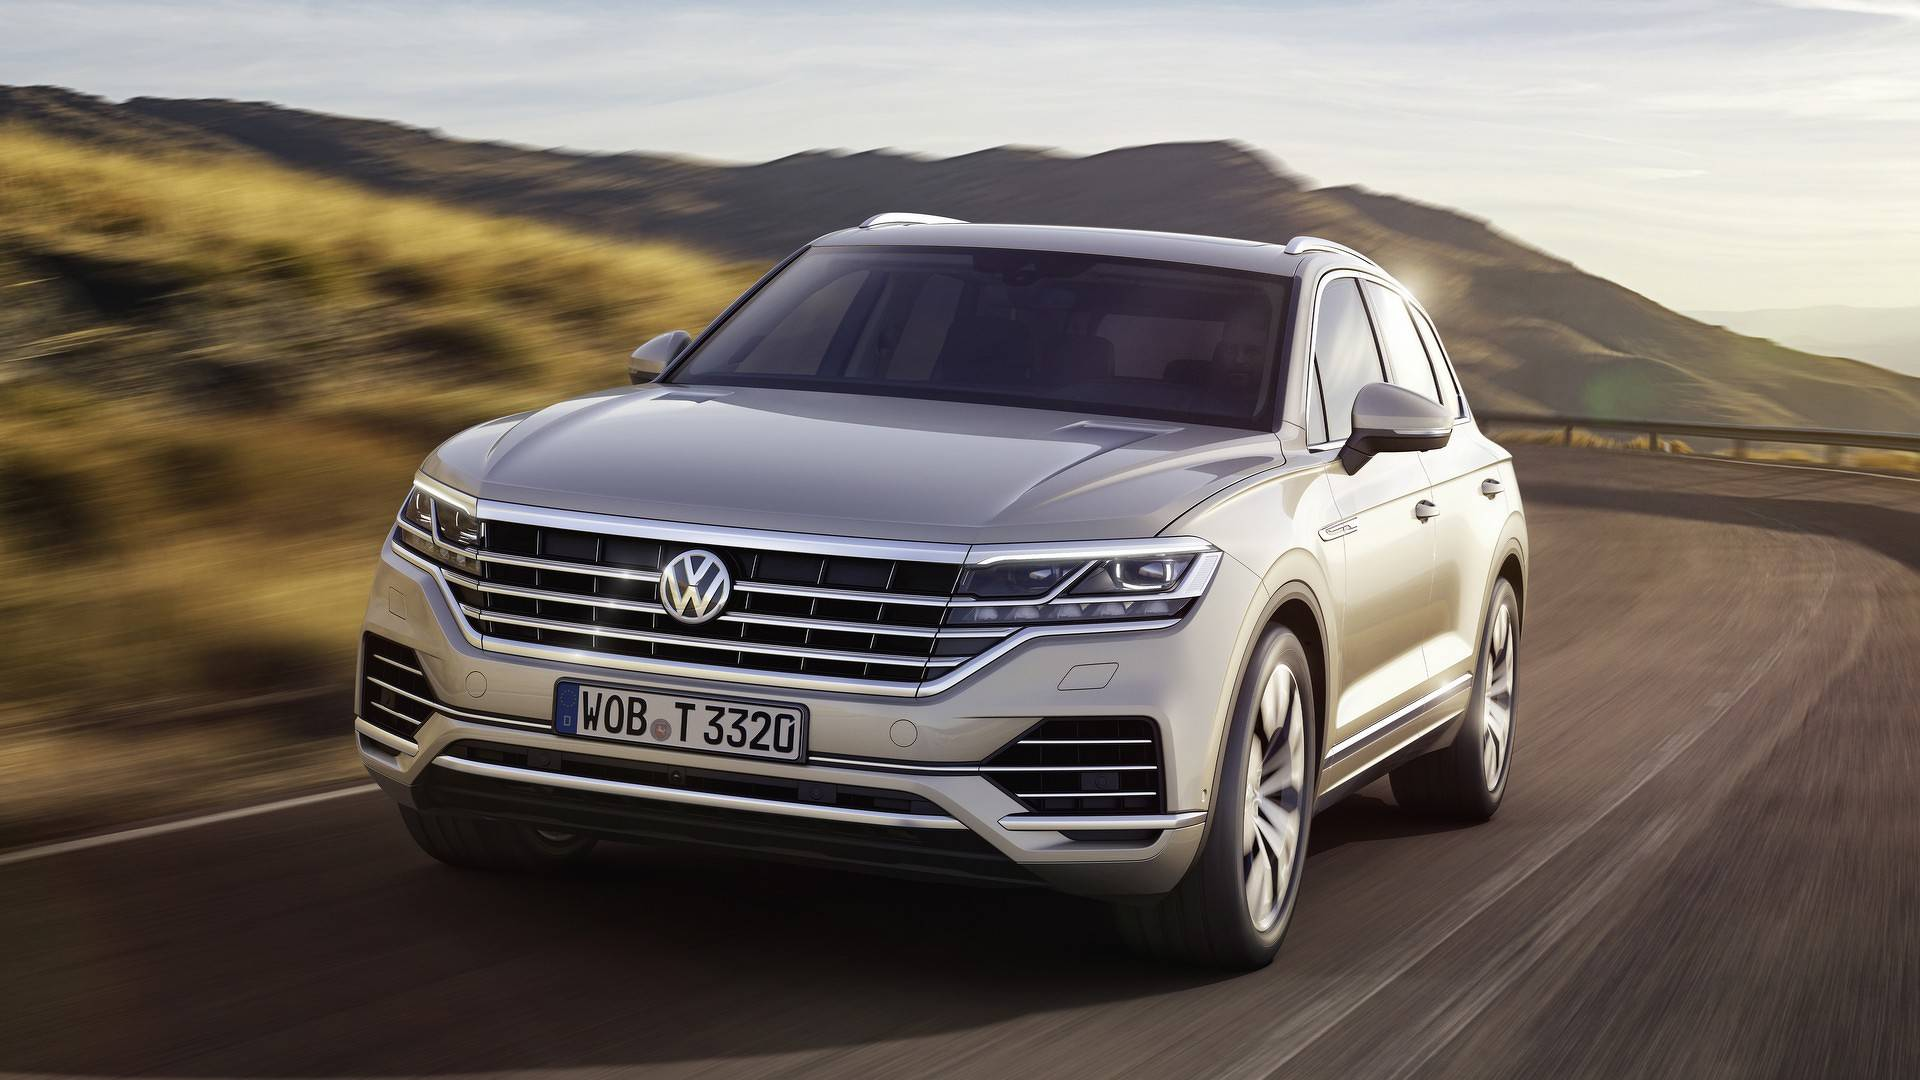 Tech Features Of The 2019 Vw Touareg